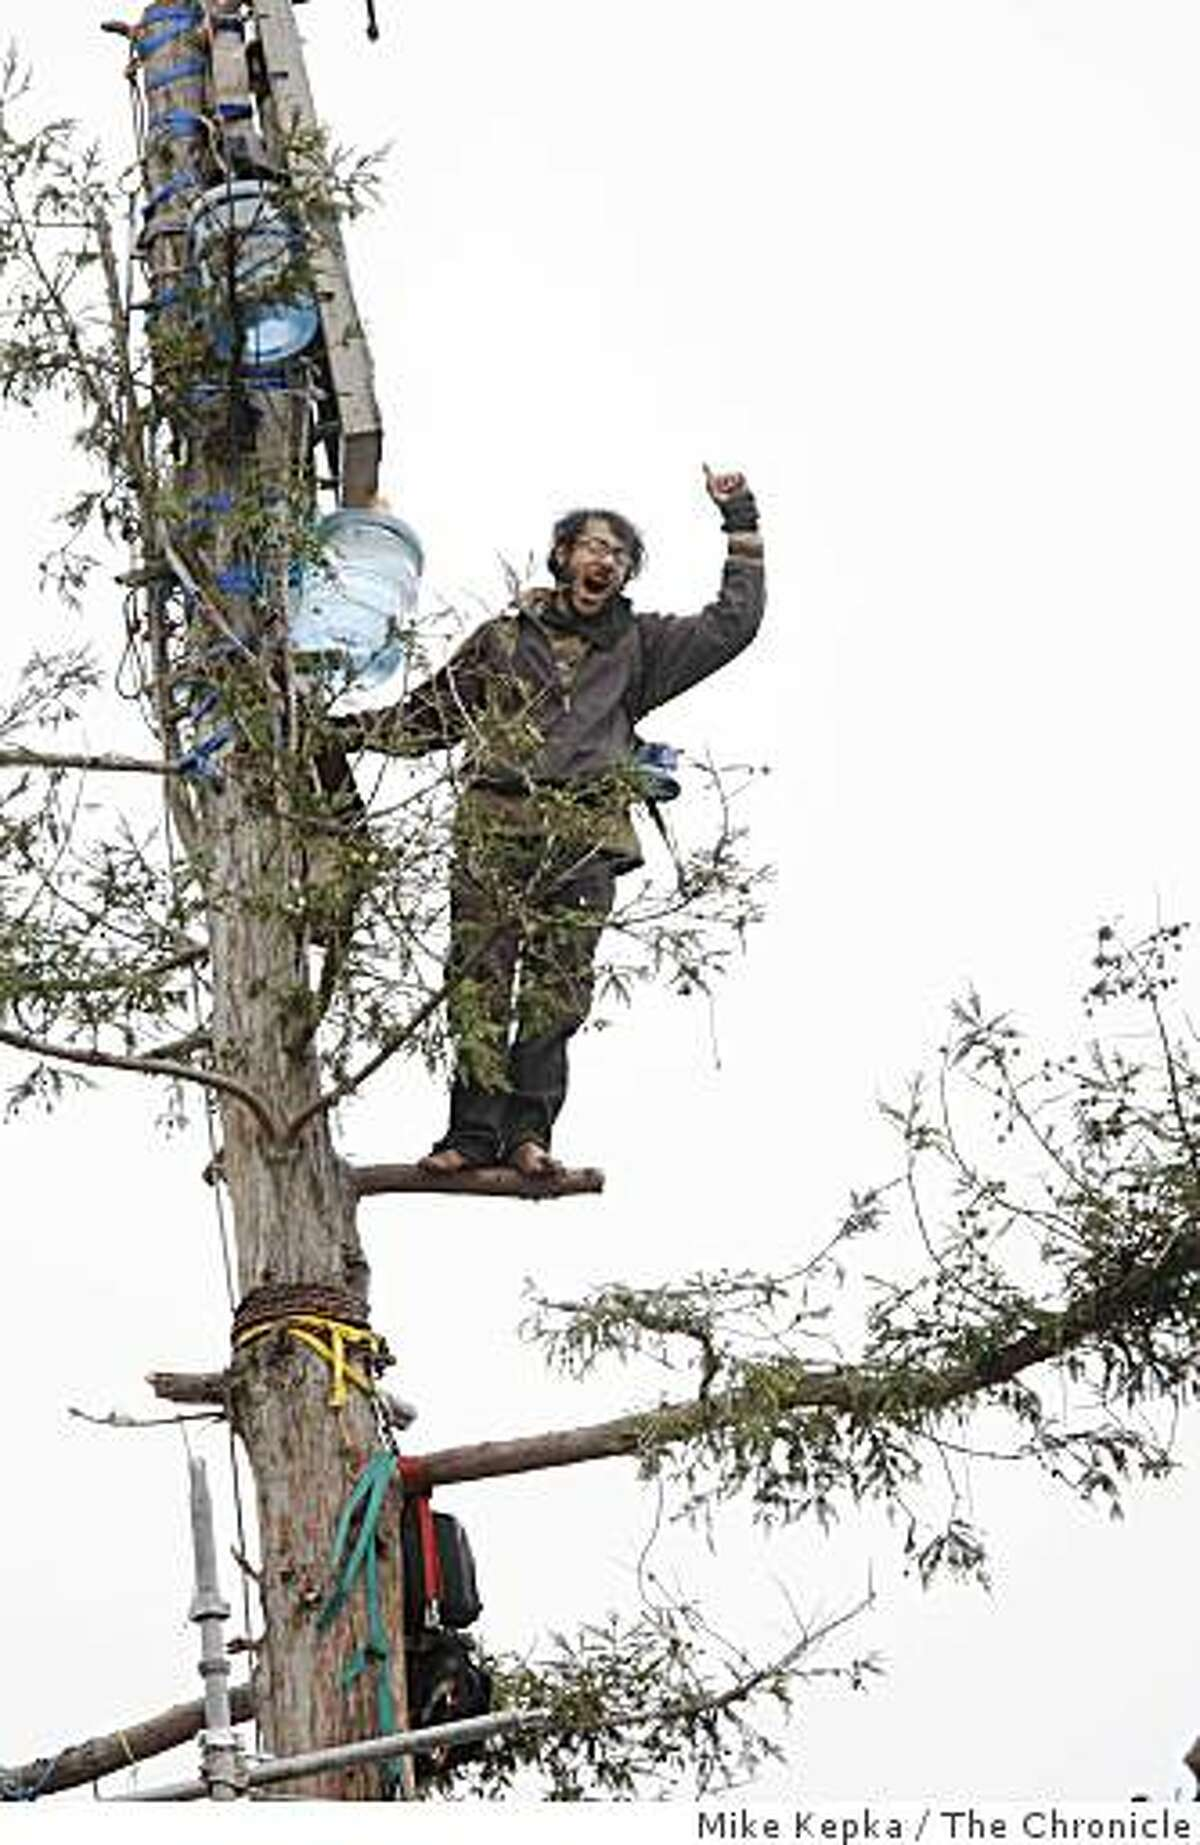 Ending a nearly two year treetop protests, the final tree sitter waves to the crowd below moments before he comes out of the lone redwood tree on U.C. Berkeley campus on Tuesday Sept. 9, 2008 in Berkeley, Calif.